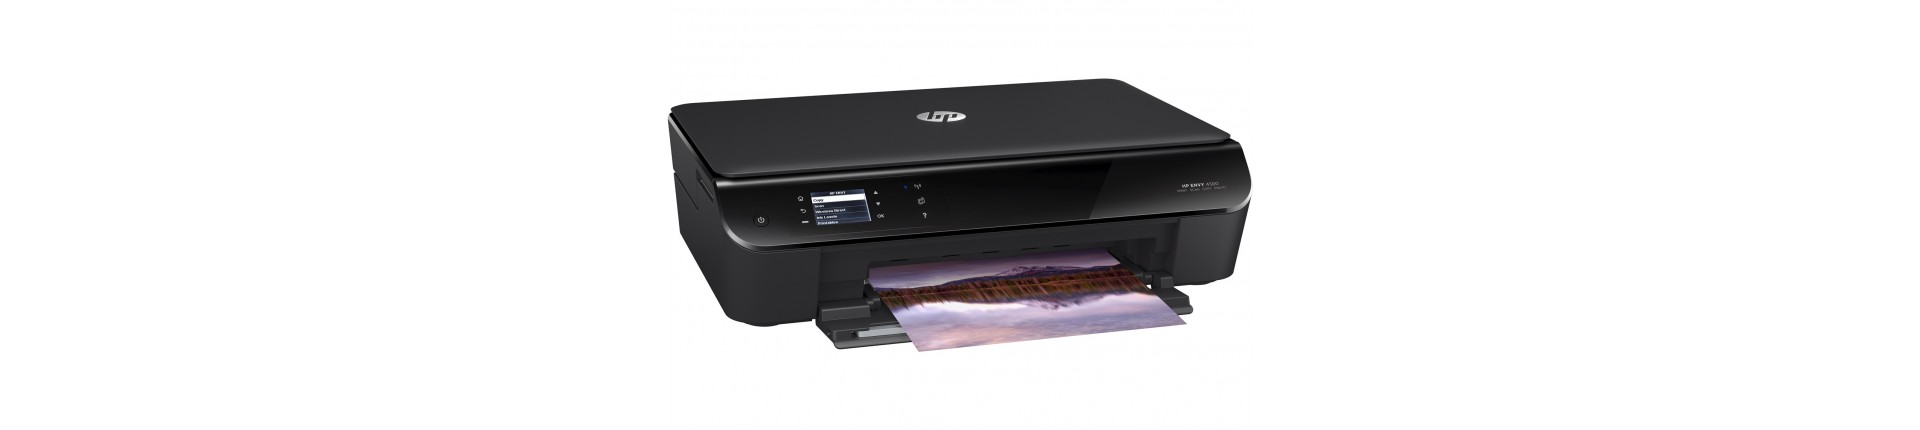 Cartouche HP Envy 4500 e-All-in-One